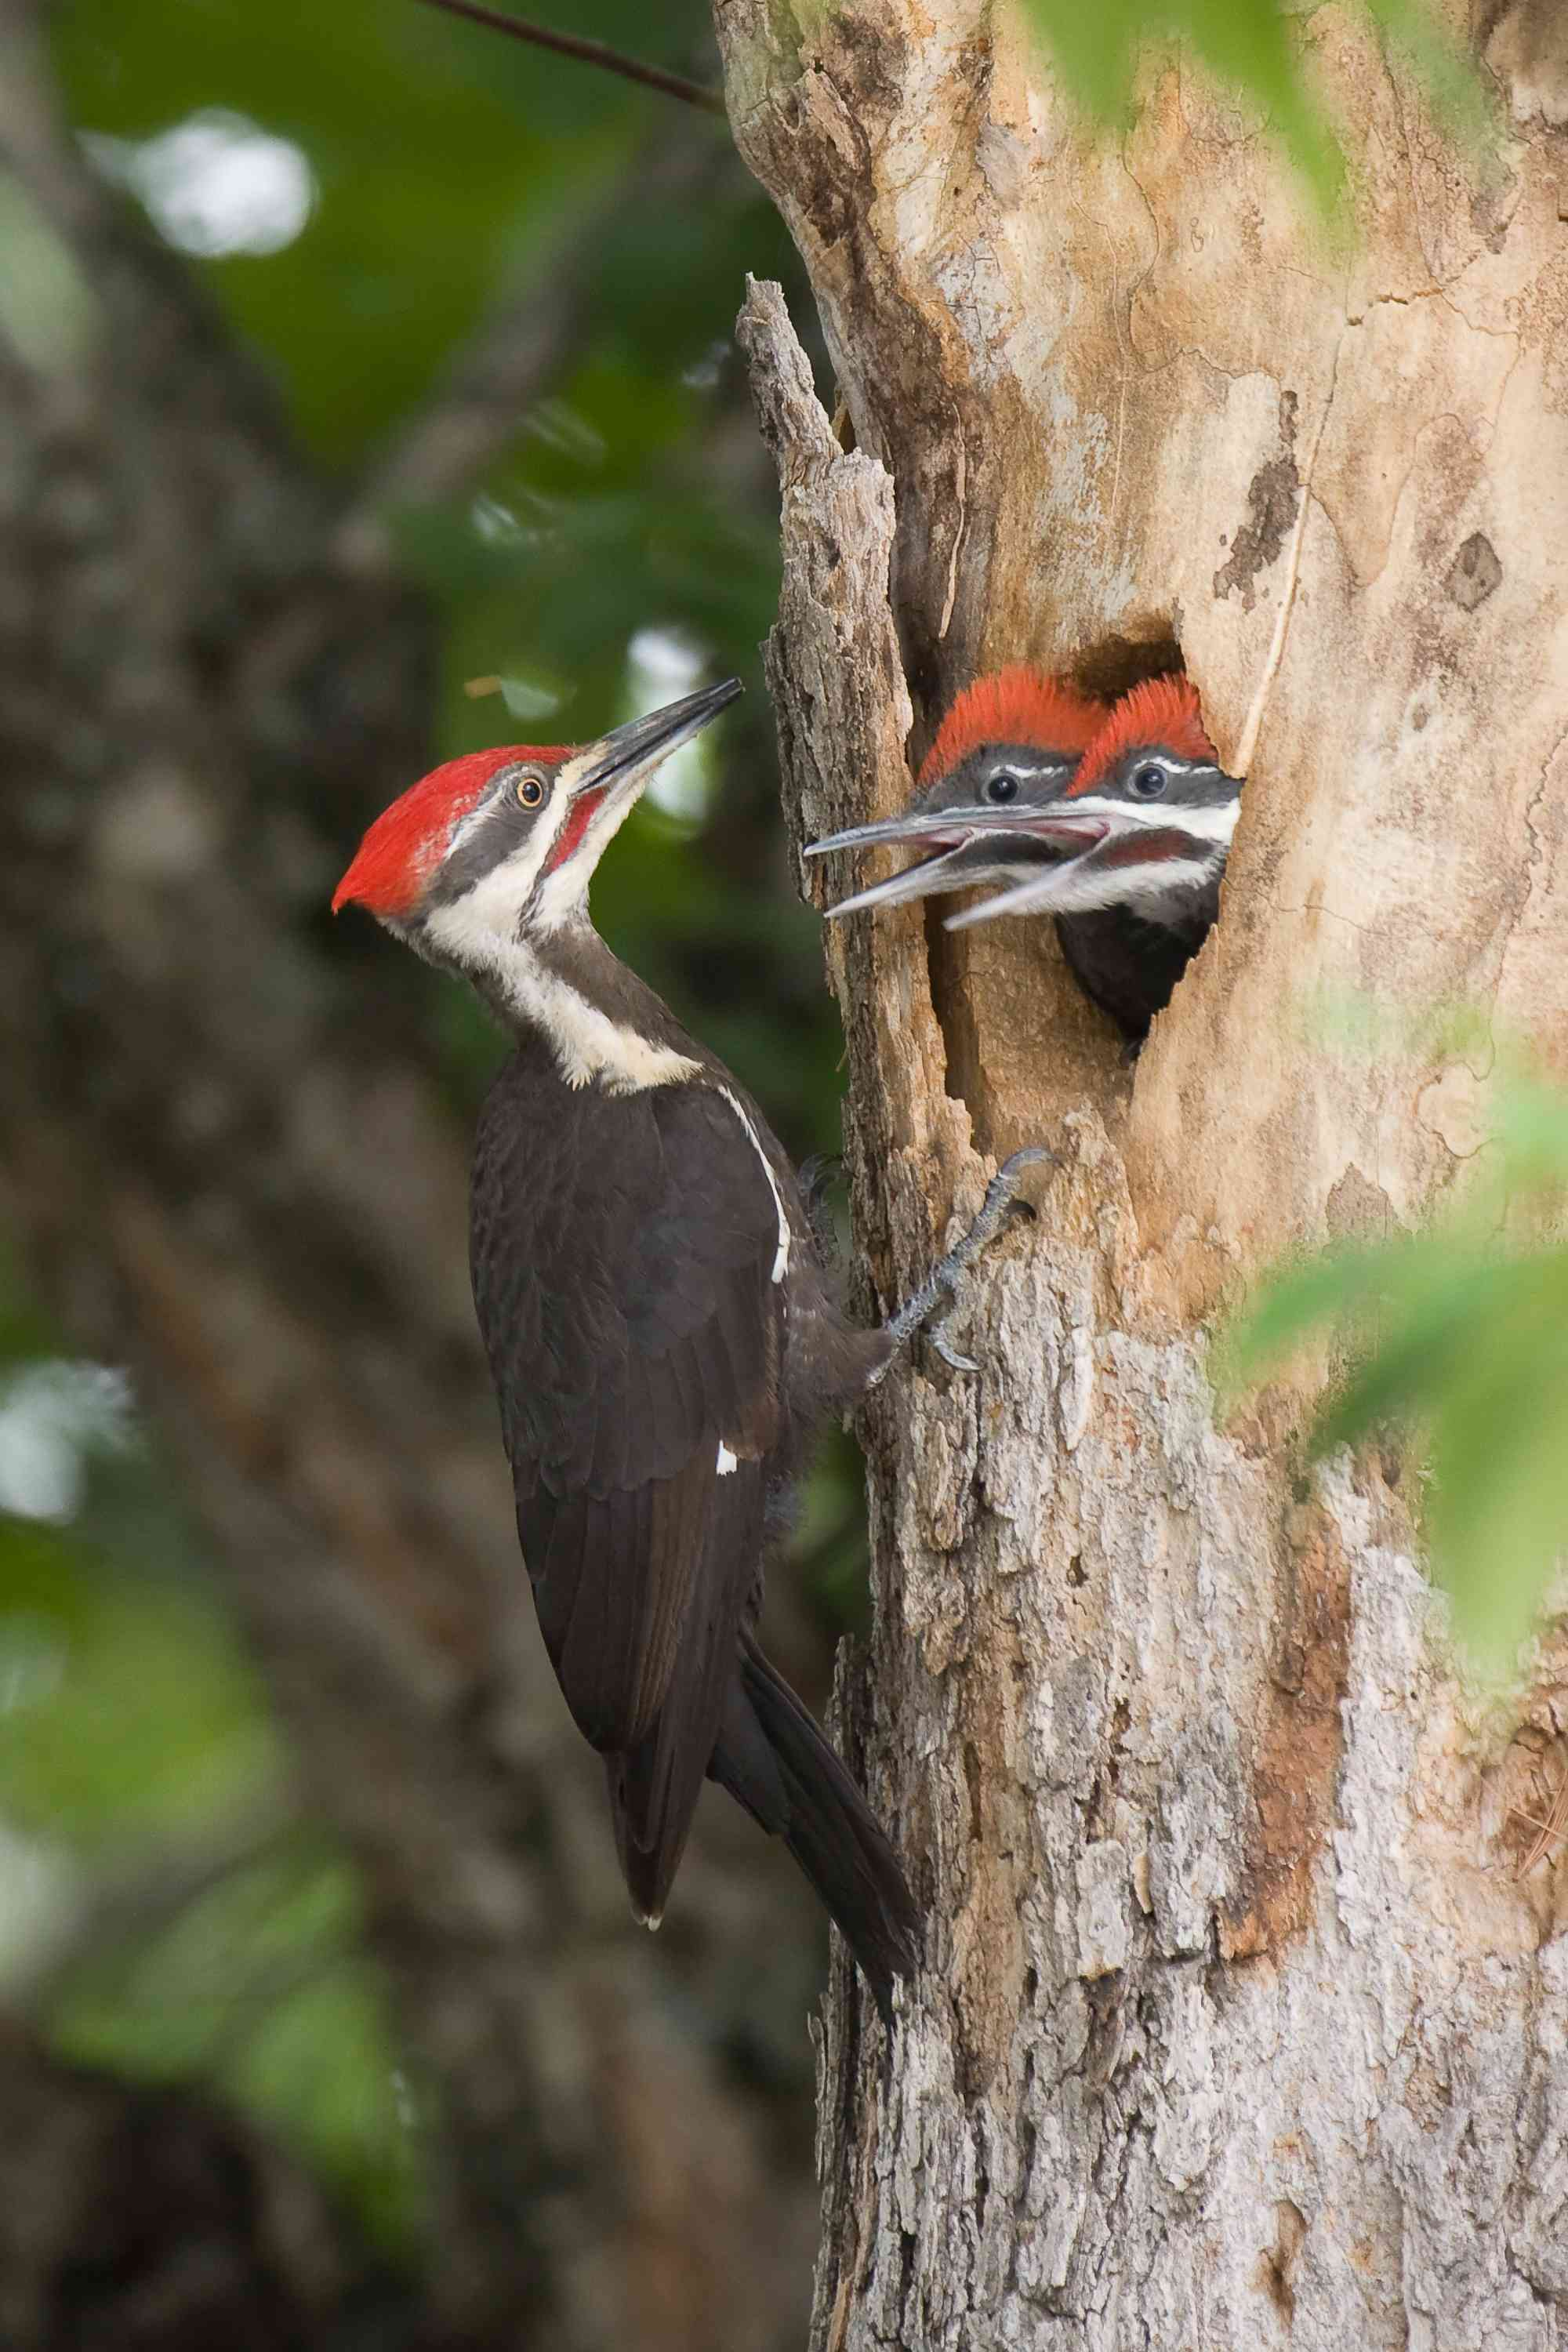 Pileated woodpecker family in a tree